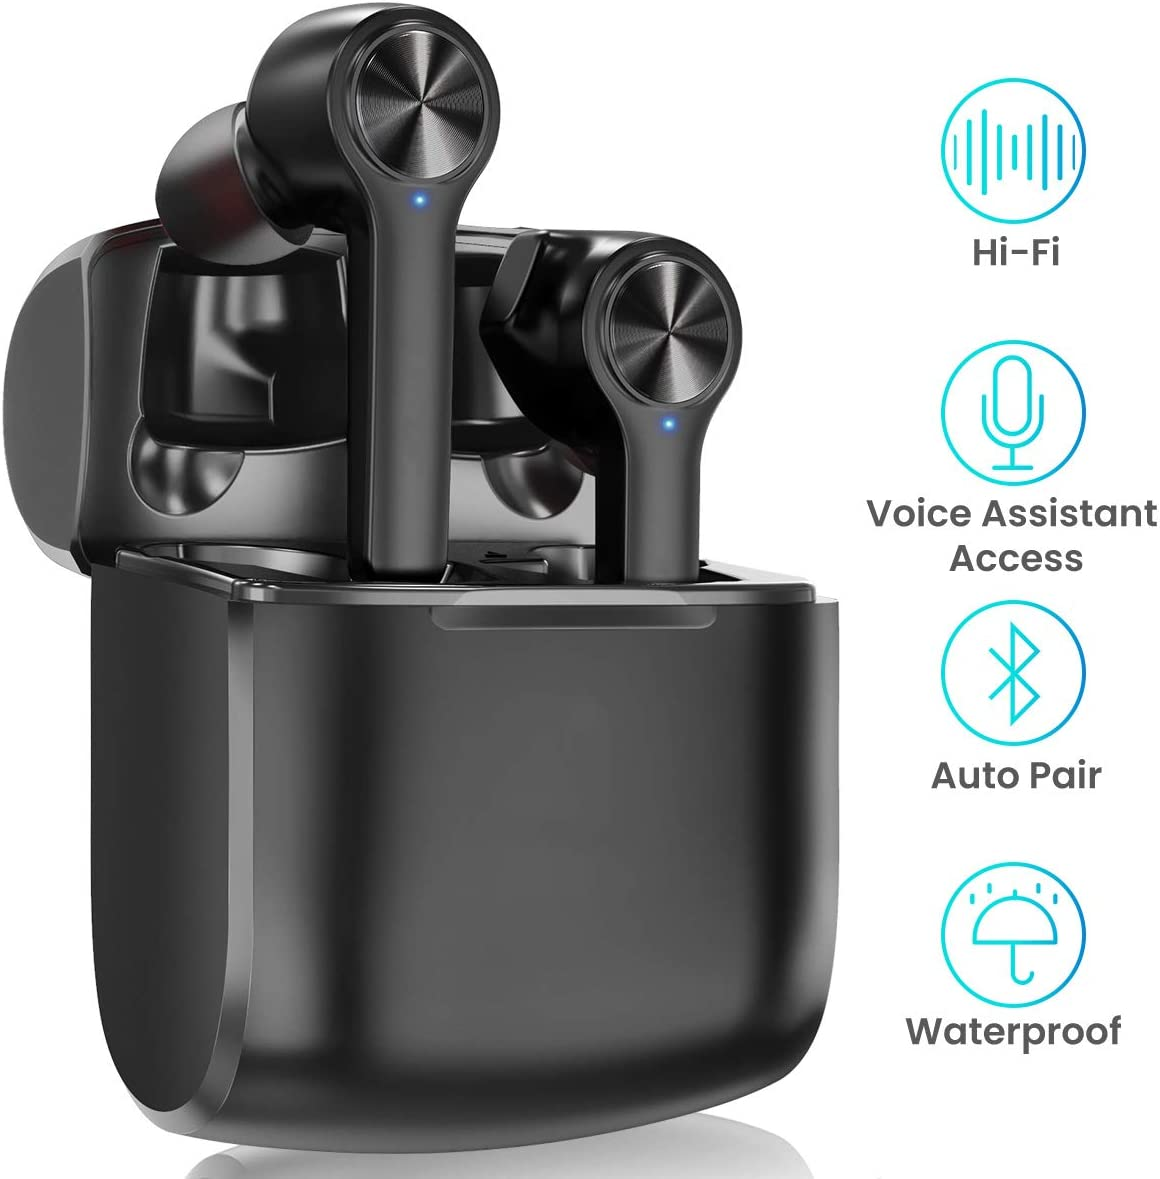 True Wireless Headphones, HopoFit HFT-11 Bluetooth 5.0 Earbuds with Mic,5 Hours Playtime,IPX5 Waterproof Smart Touch Control in-Ear Stereo,Wireless Charger Portable Charging Case Black